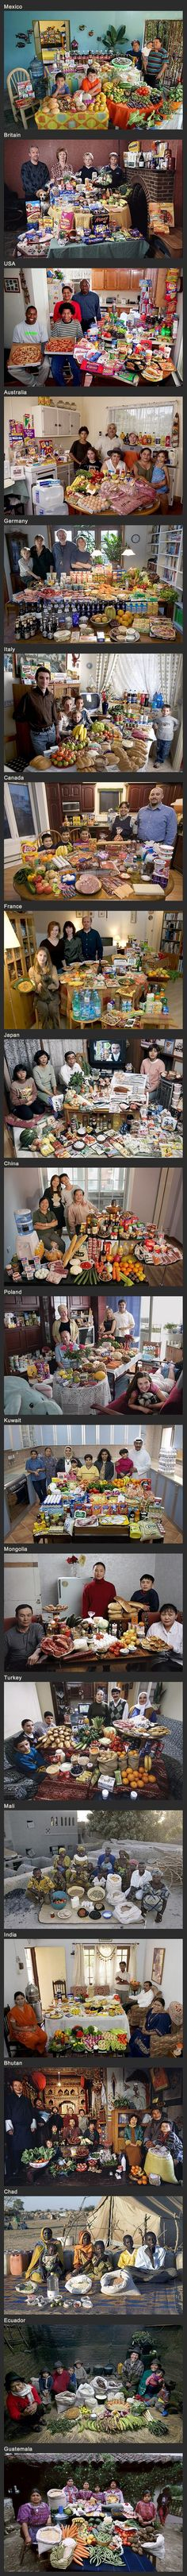 Wow, some of us have so much...Friday Factoids: Families around the world photographed with a weeks worth of groceries